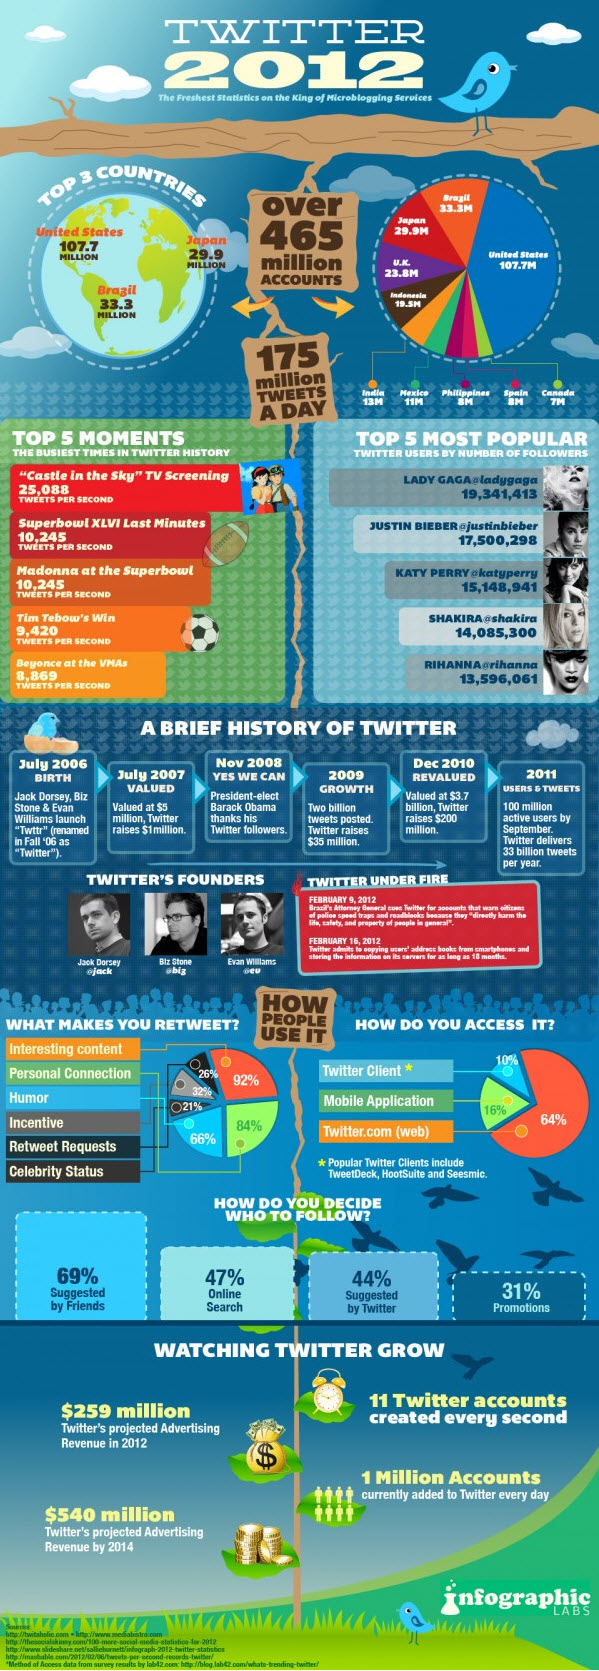 Twitter-Facts-Figures-and-Statistics-2012-Infographic